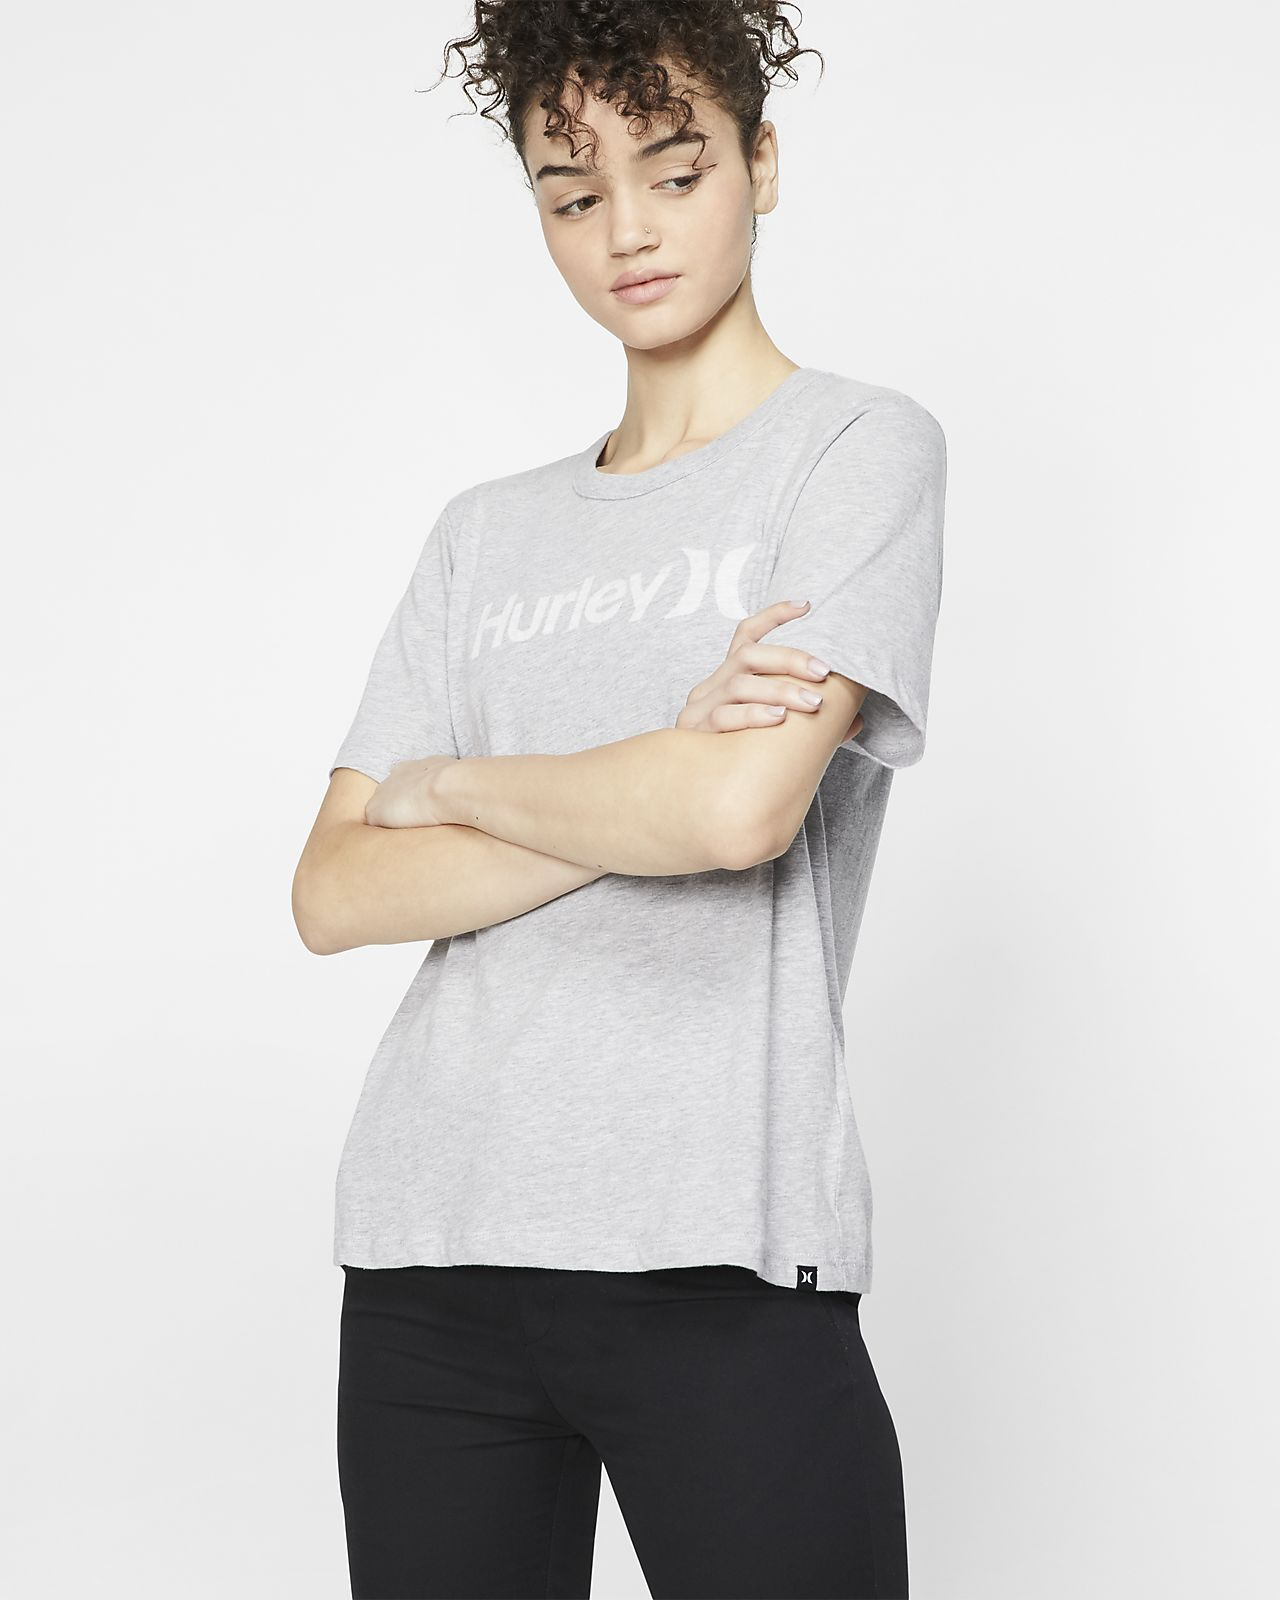 Hurley One And Only Push Through Women's Short-Sleeve Crew